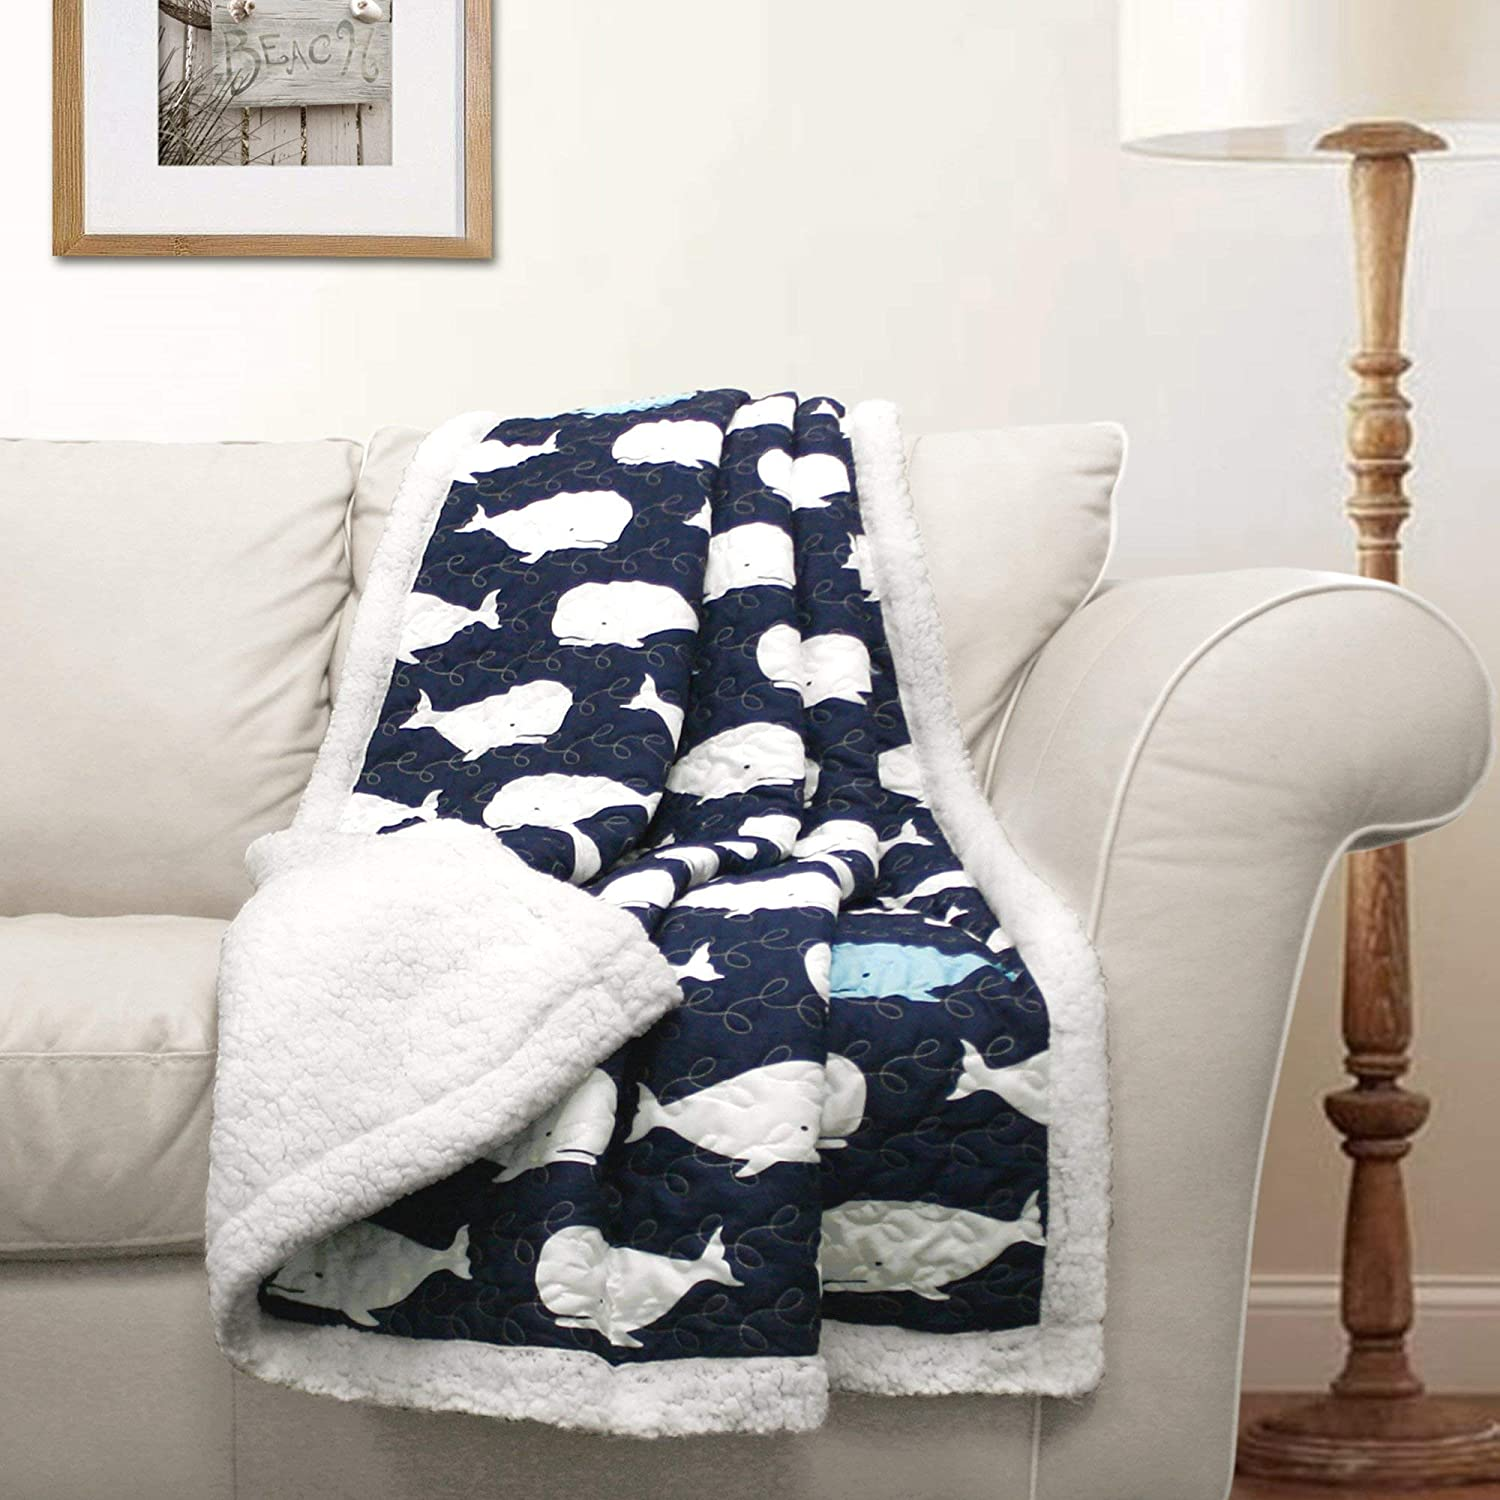 "Lush Decor Whale Throw Sherpa, 60"" x 50"", Navy"